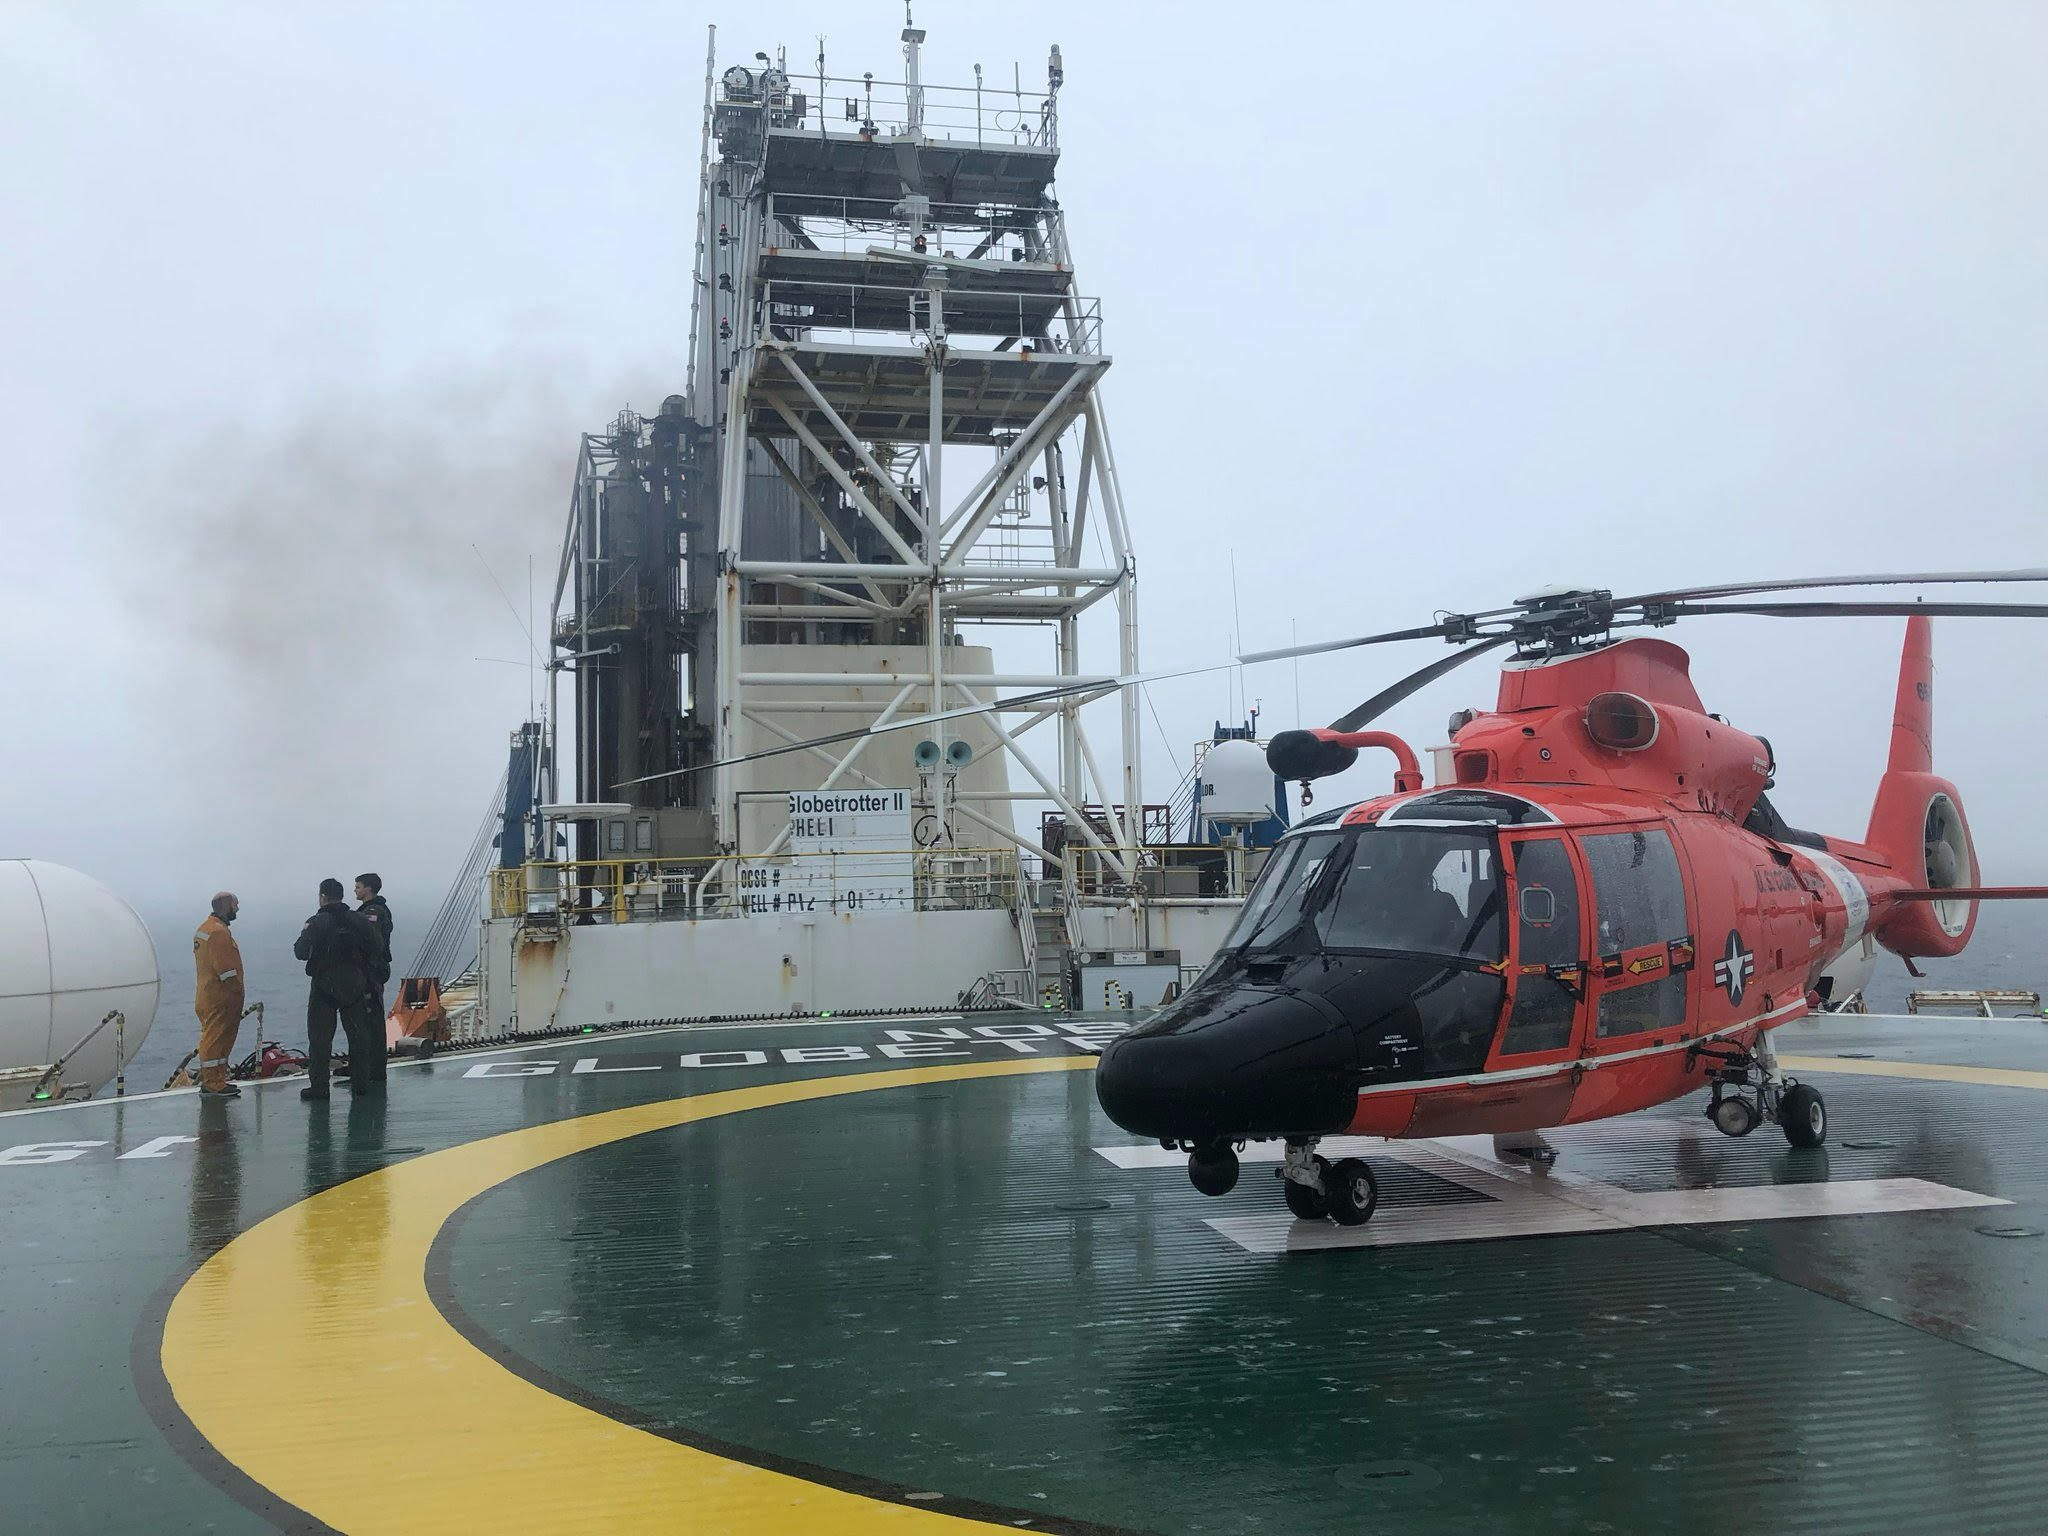 USCG Air Station New Orleans aircrew aboard the Noble Globetrotter II. Photo via USCG